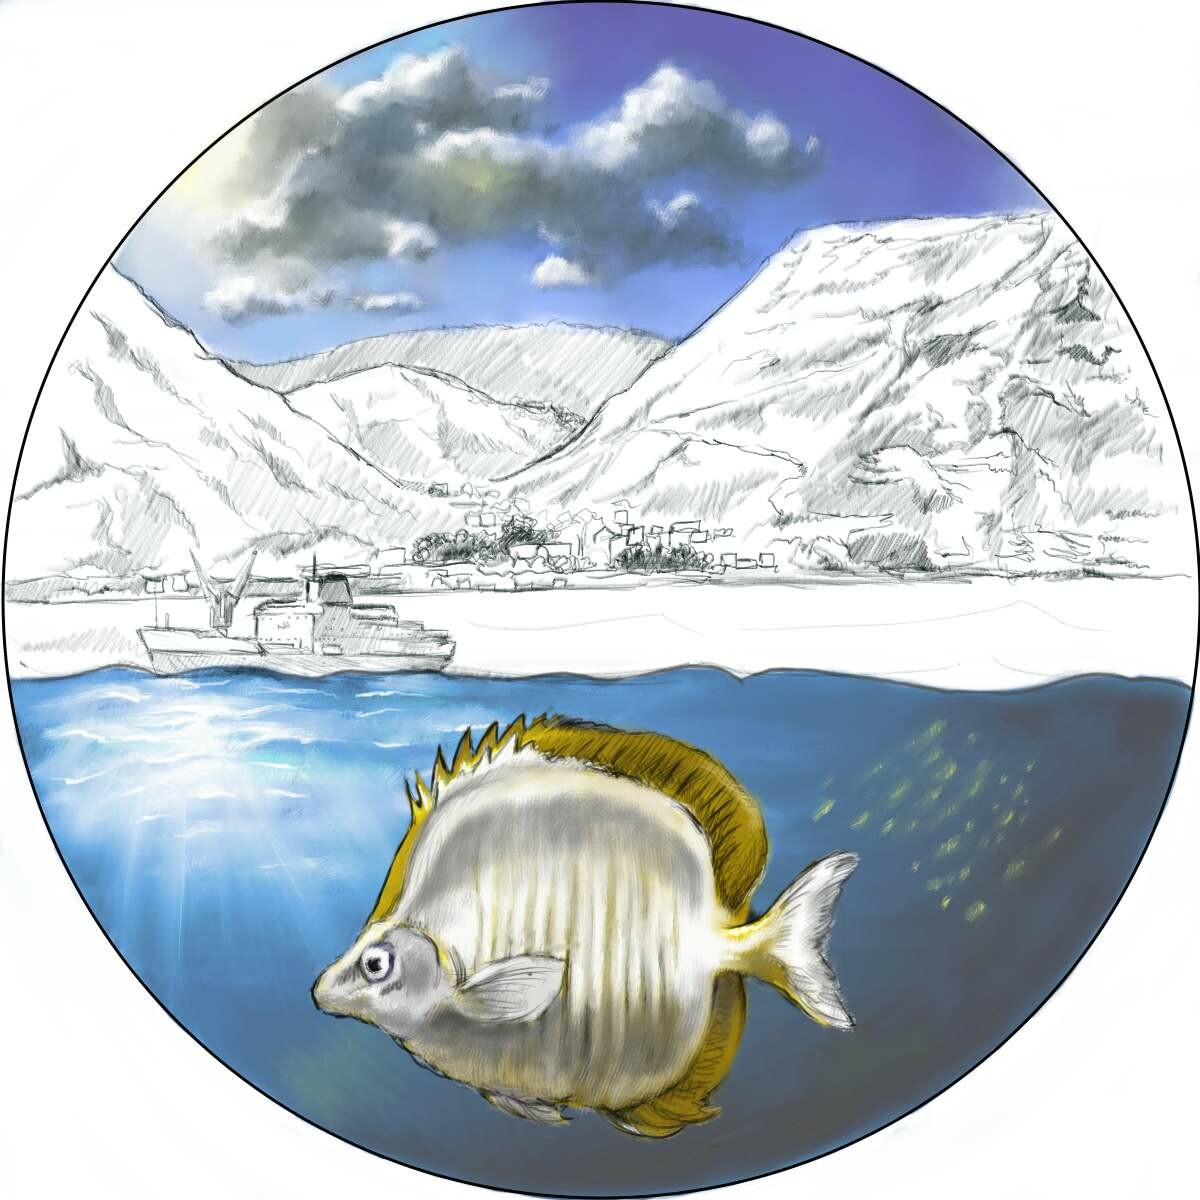 WIldlife illustration for printed coin